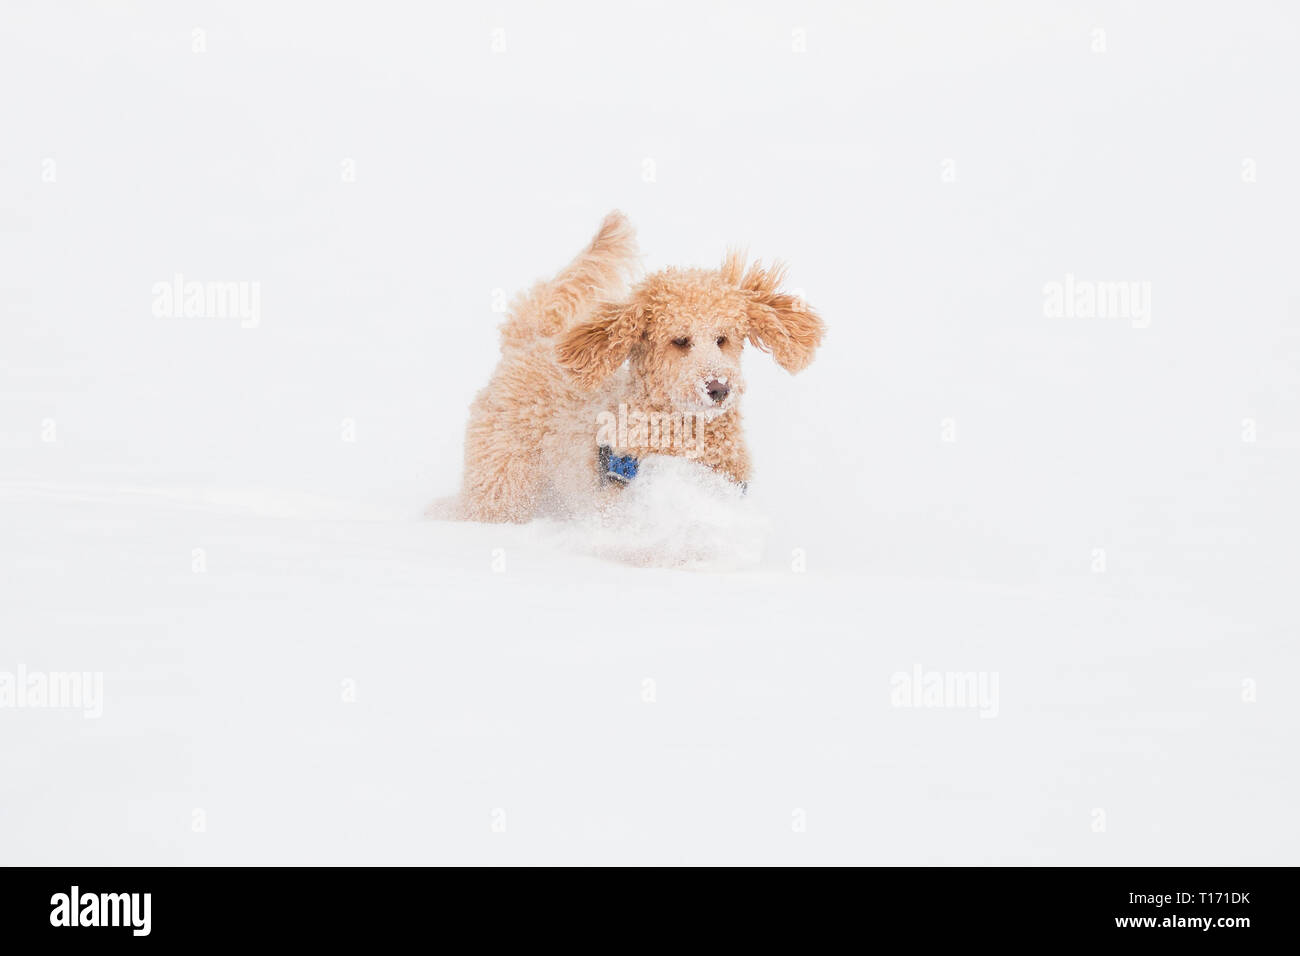 Young apricot poodle is jumping and enjoying in the snow. Playful dog running in snowy field in Weissensee on a beautiful winter day, Alps, Austria - Stock Image